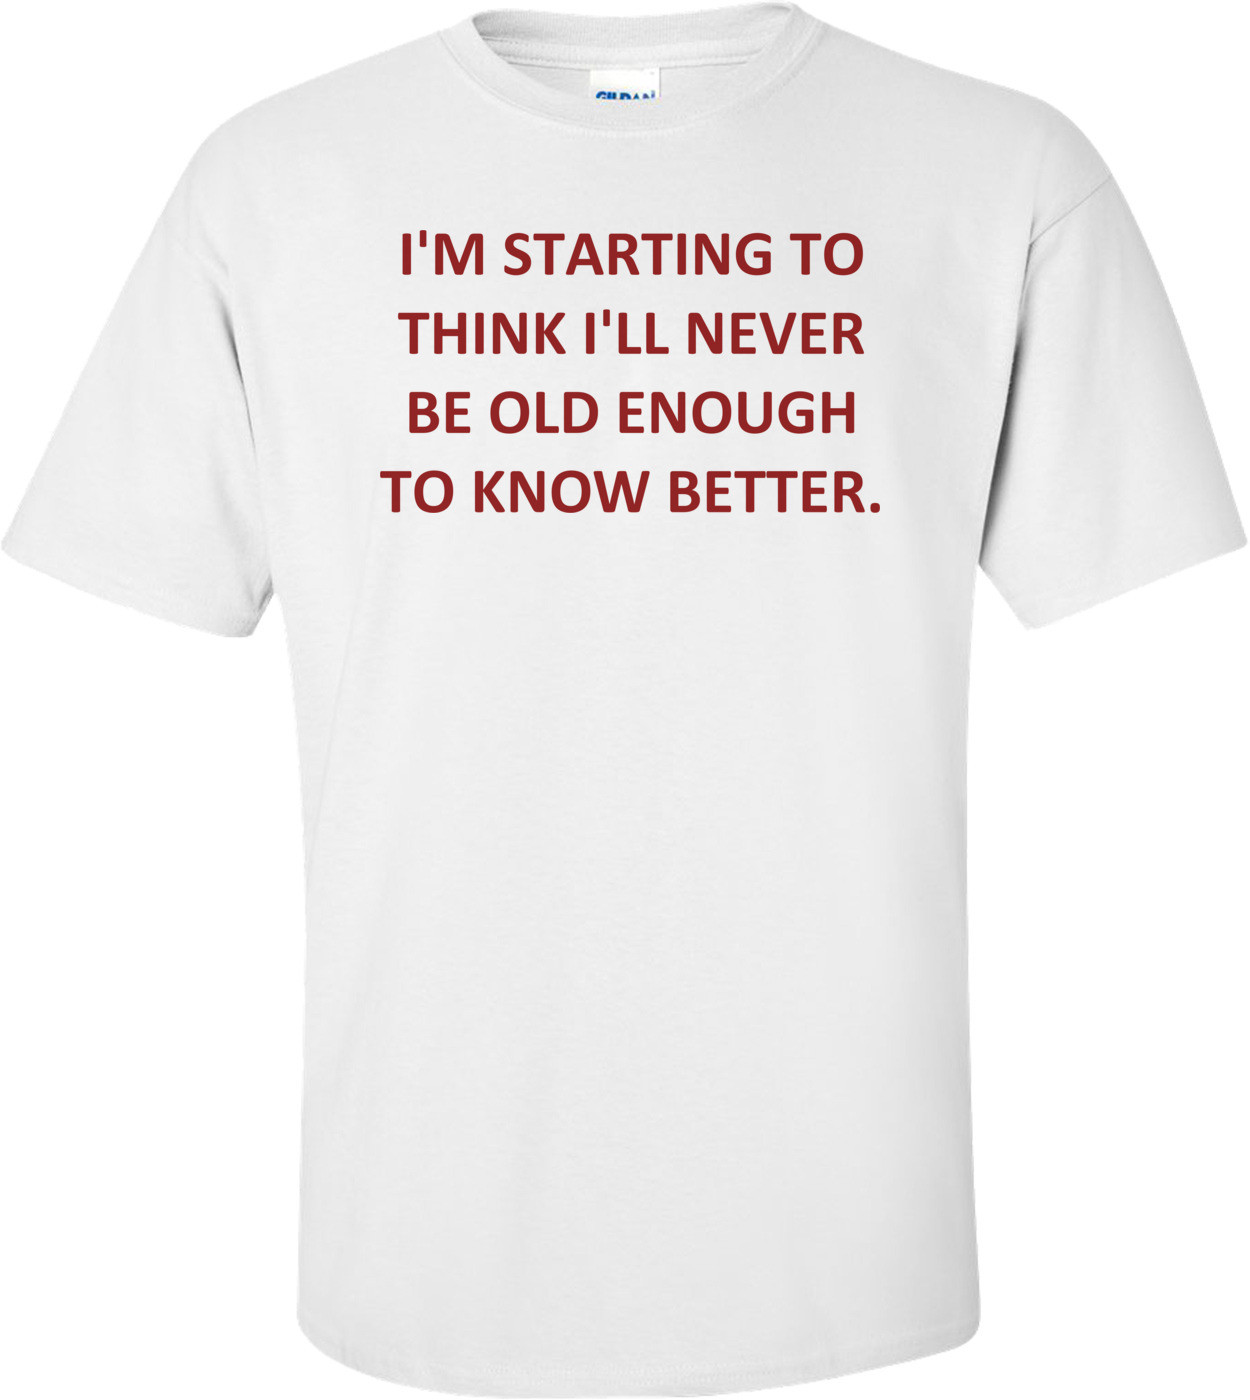 I'M STARTING TO THINK I'LL NEVER BE OLD ENOUGH TO KNOW BETTER. Shirt